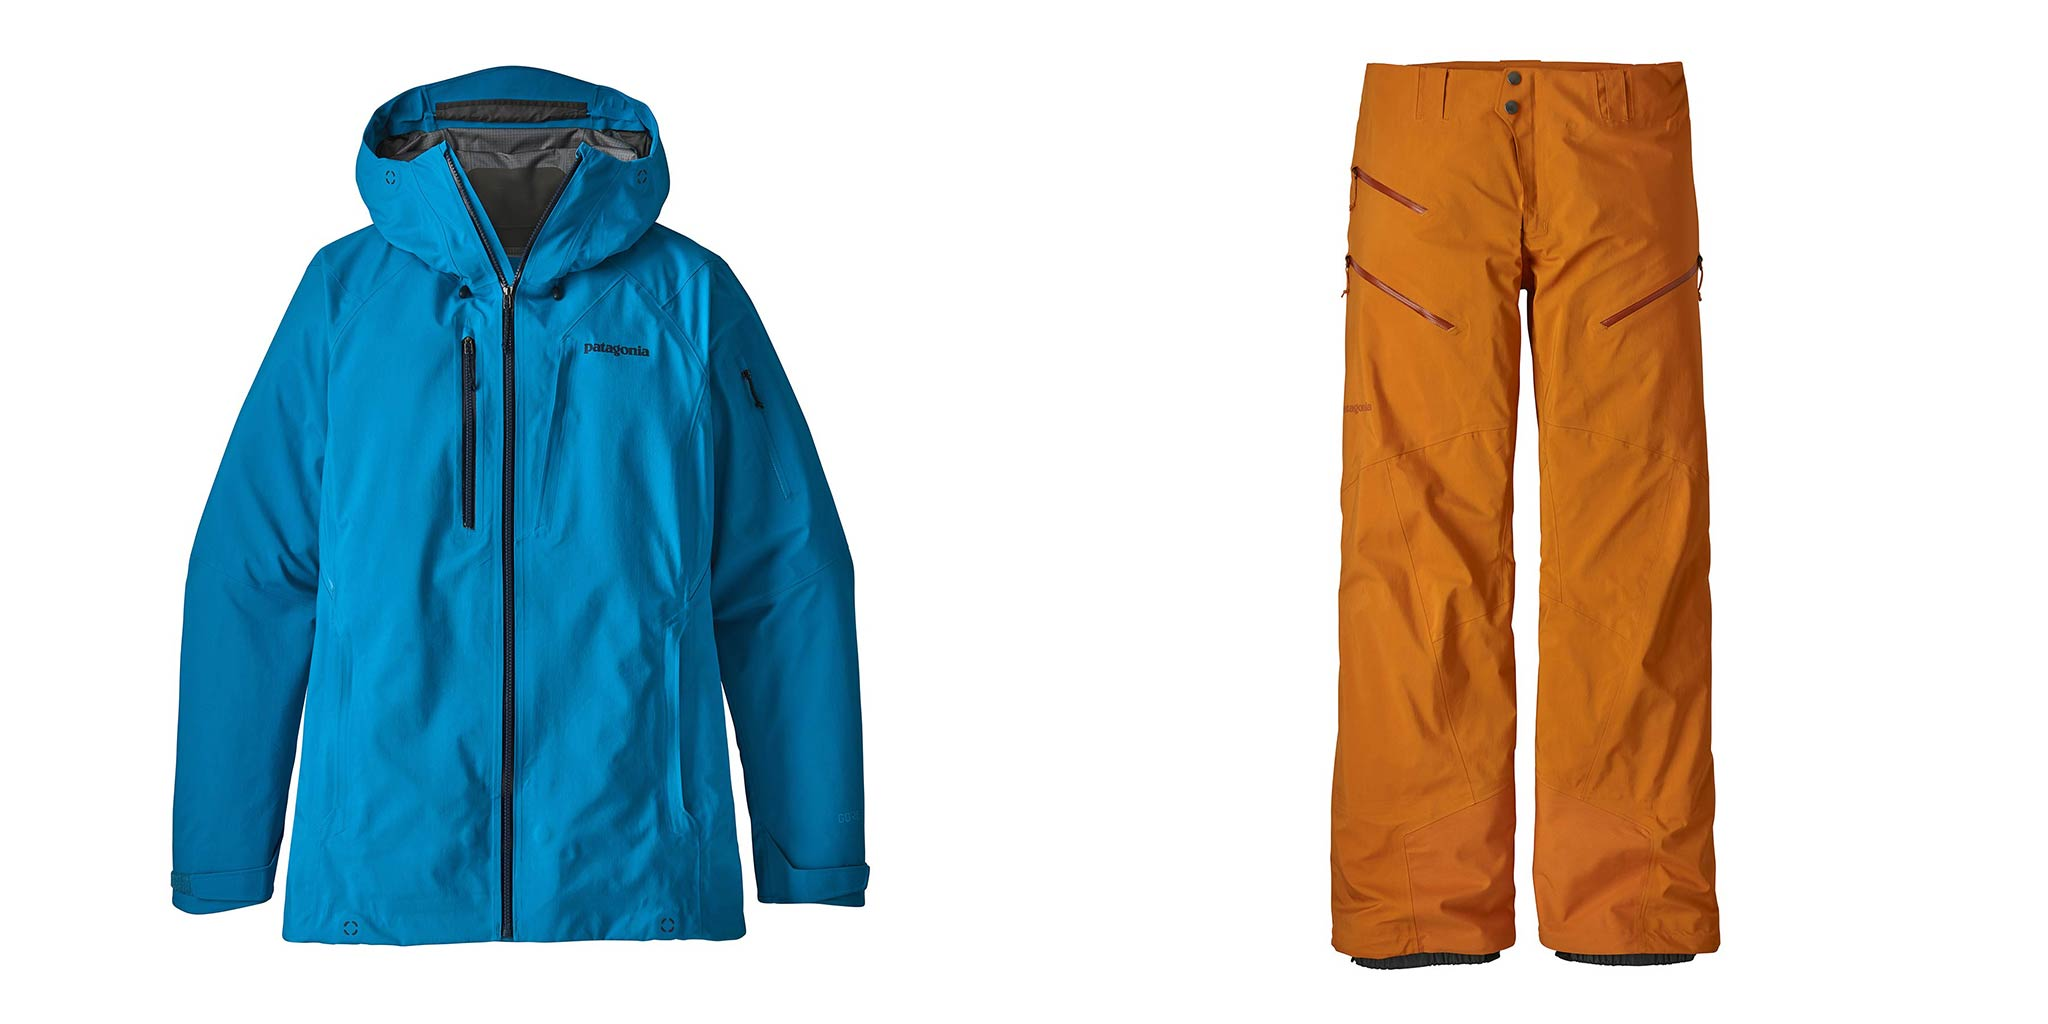 Frauen: Patagonia PowSlayer Jacket & Pants